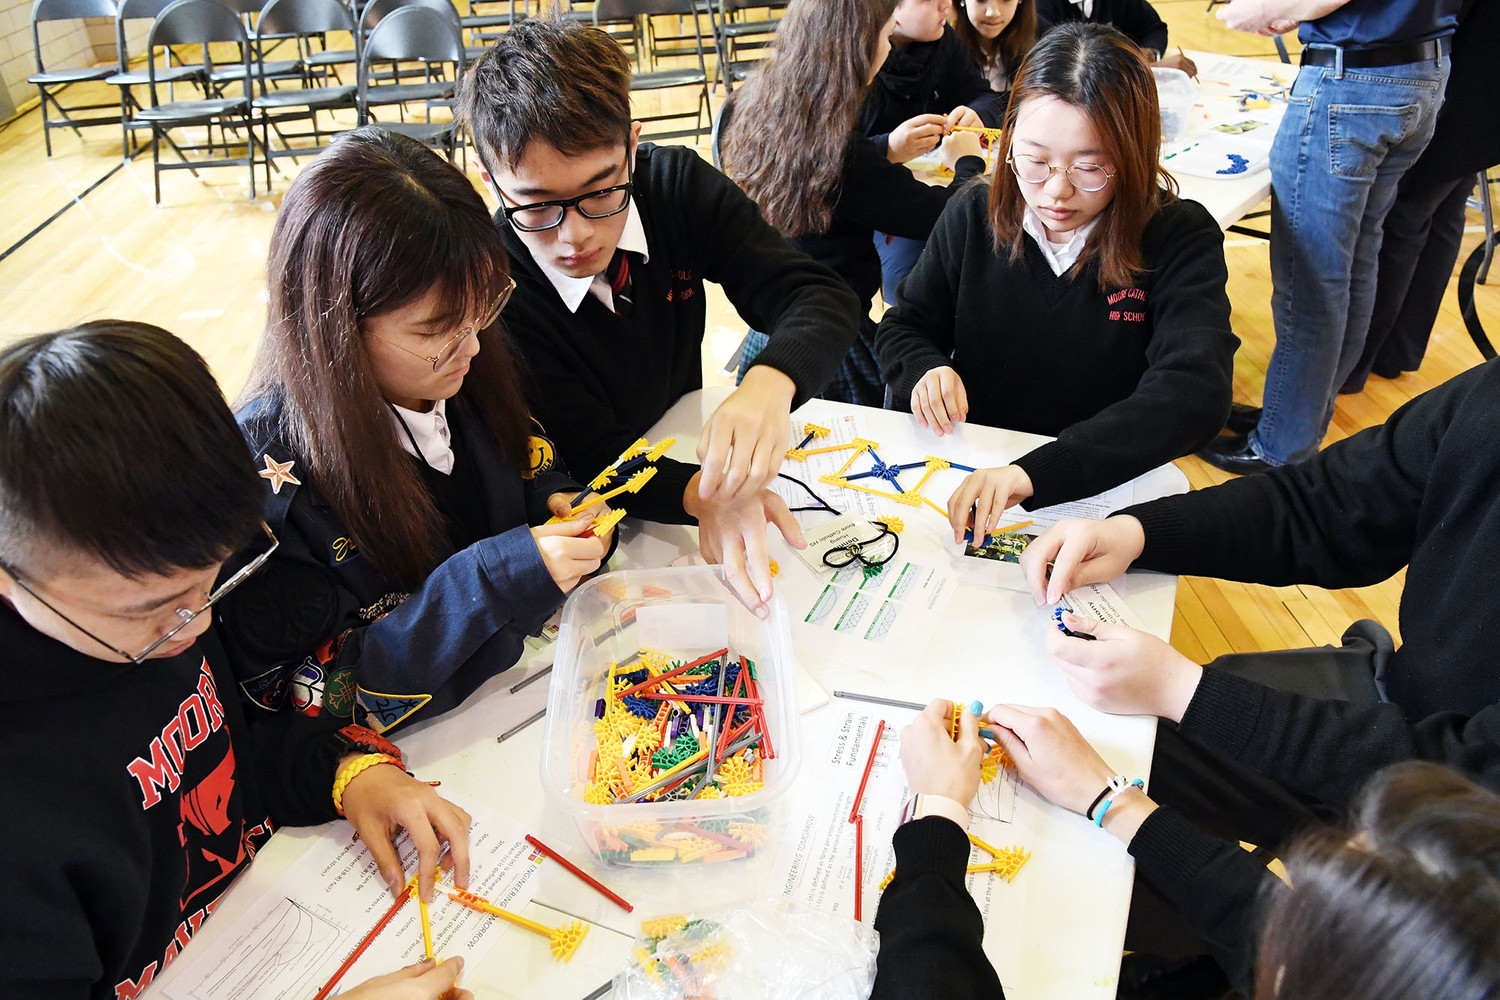 Moore Catholic students concentrate on their bridge experiment. From left: Jason Zhou, Rachel Zhang, Dennis Huang and Eunice Wang.